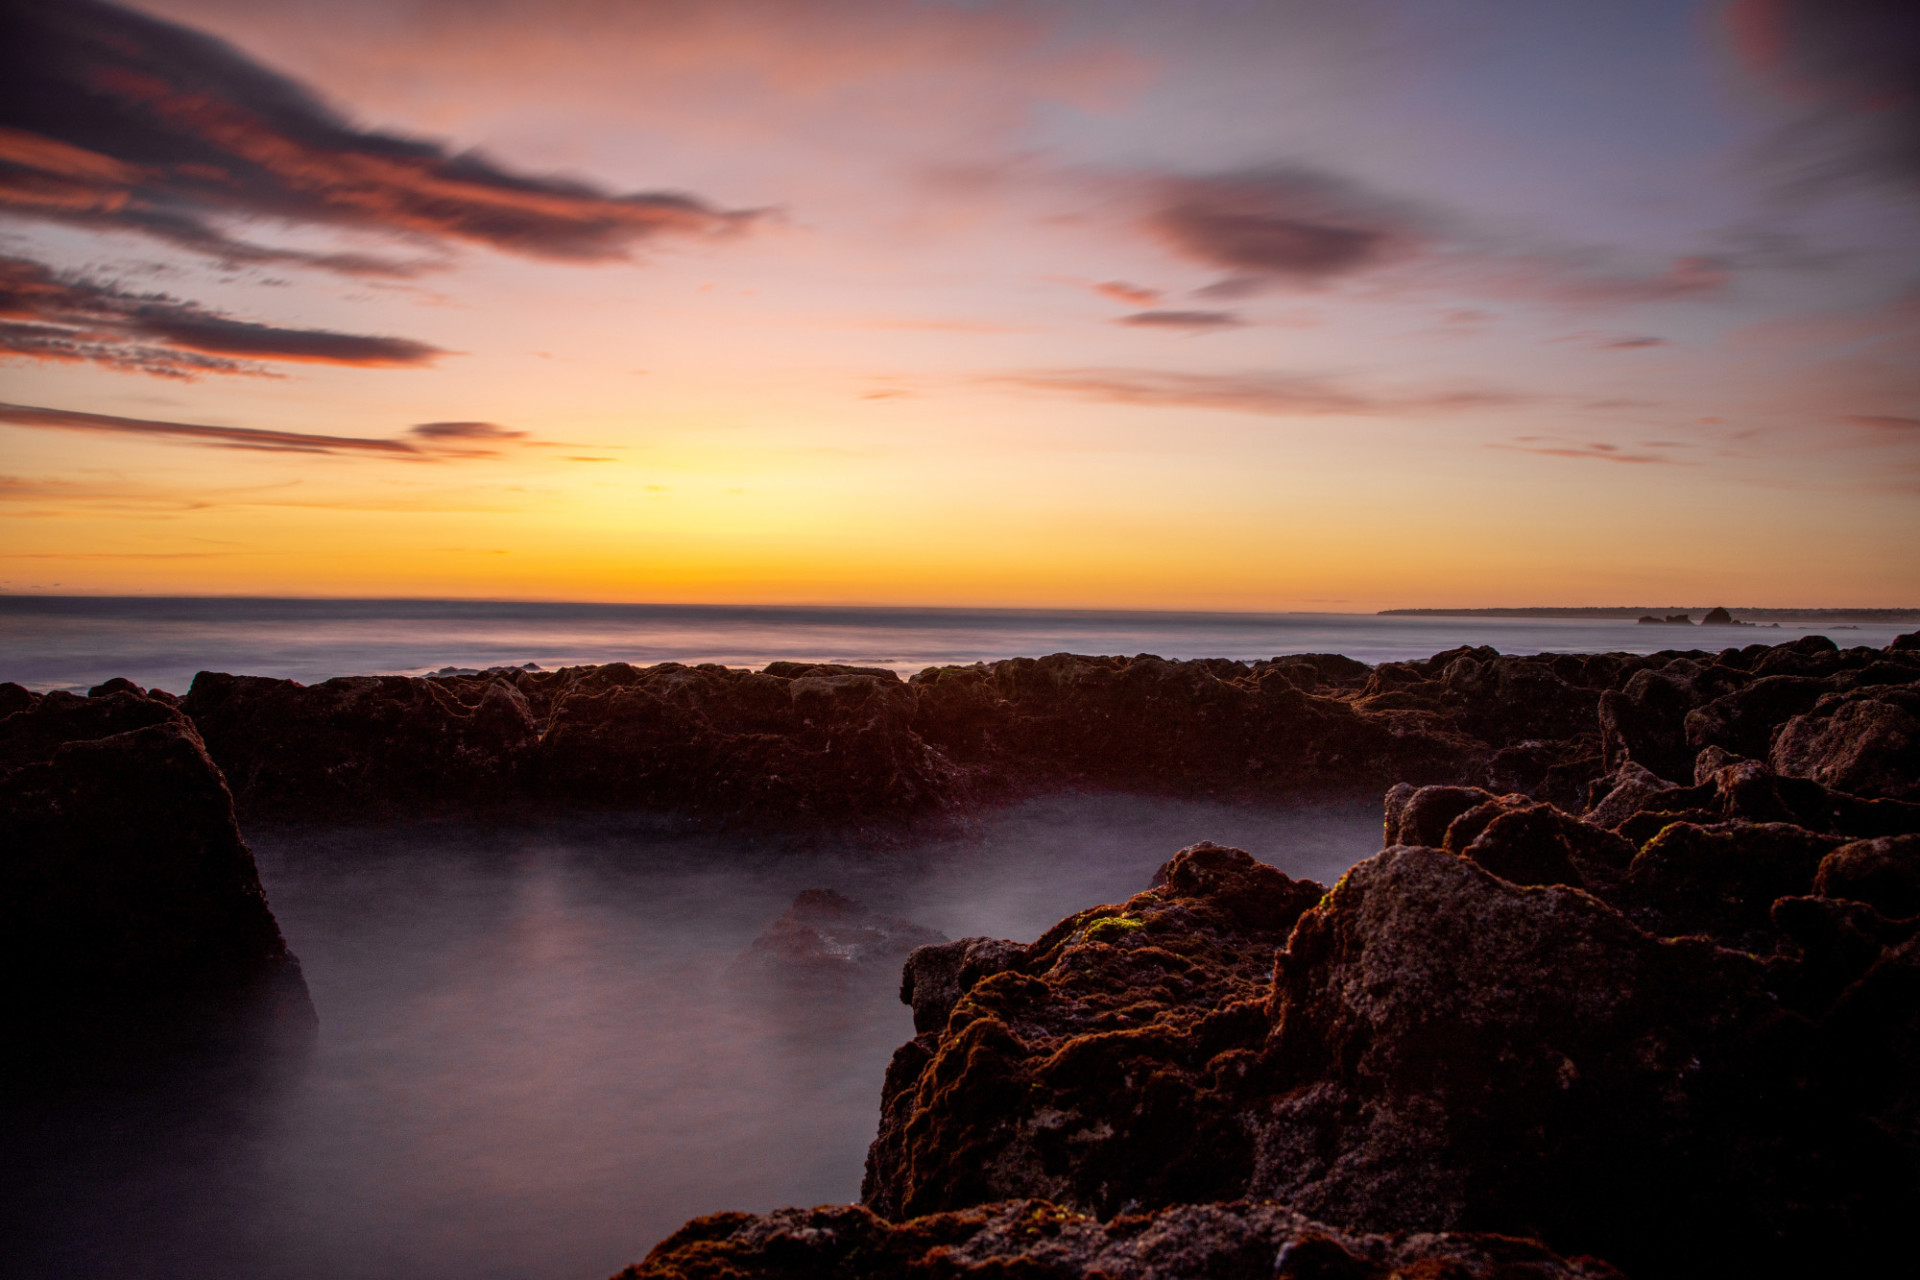 Wonderful sunset on the rocky beach of Portugal